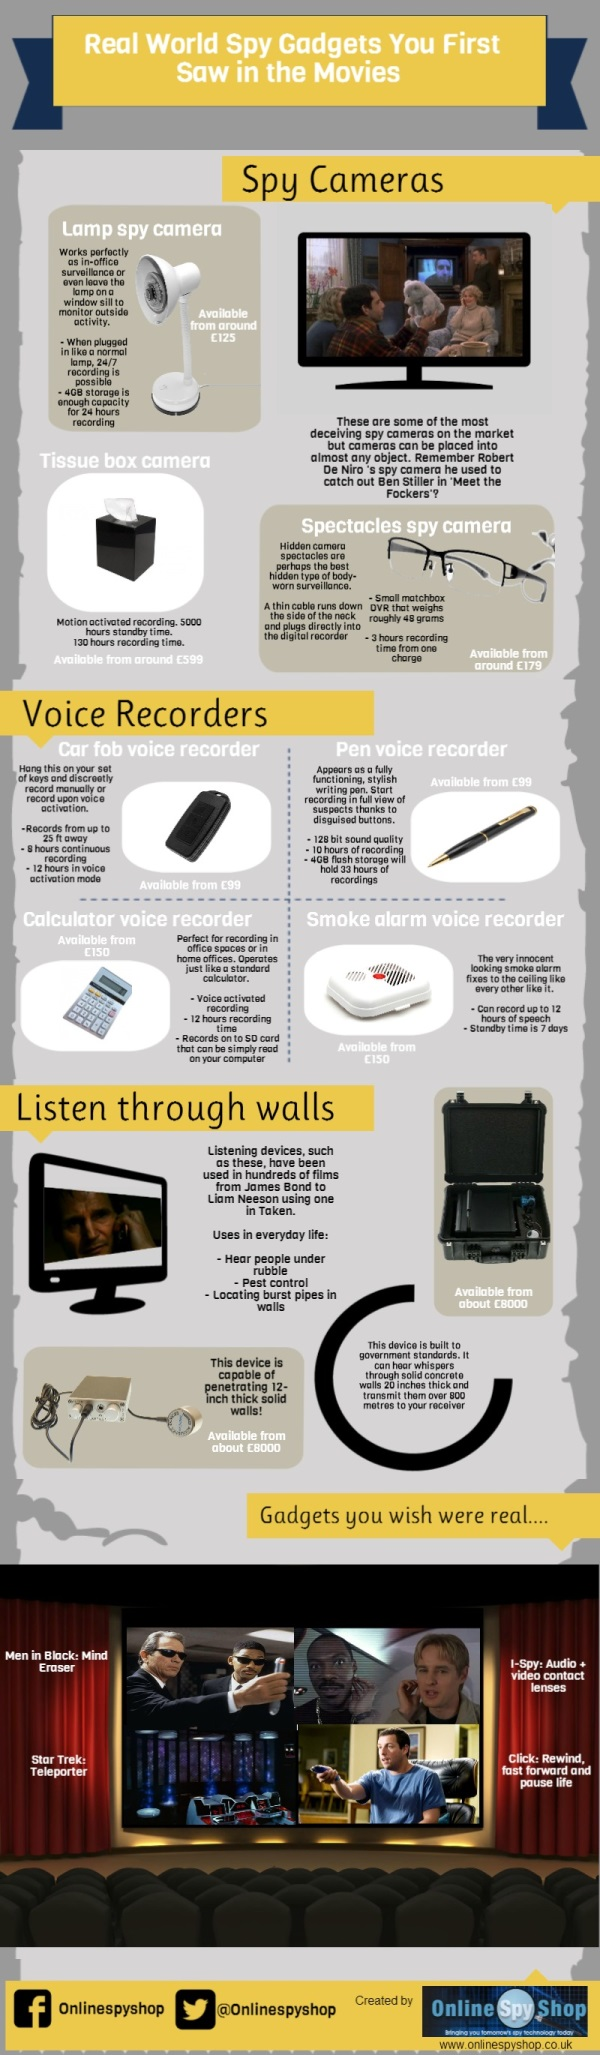 Real life spy gadgets we want for Christmas